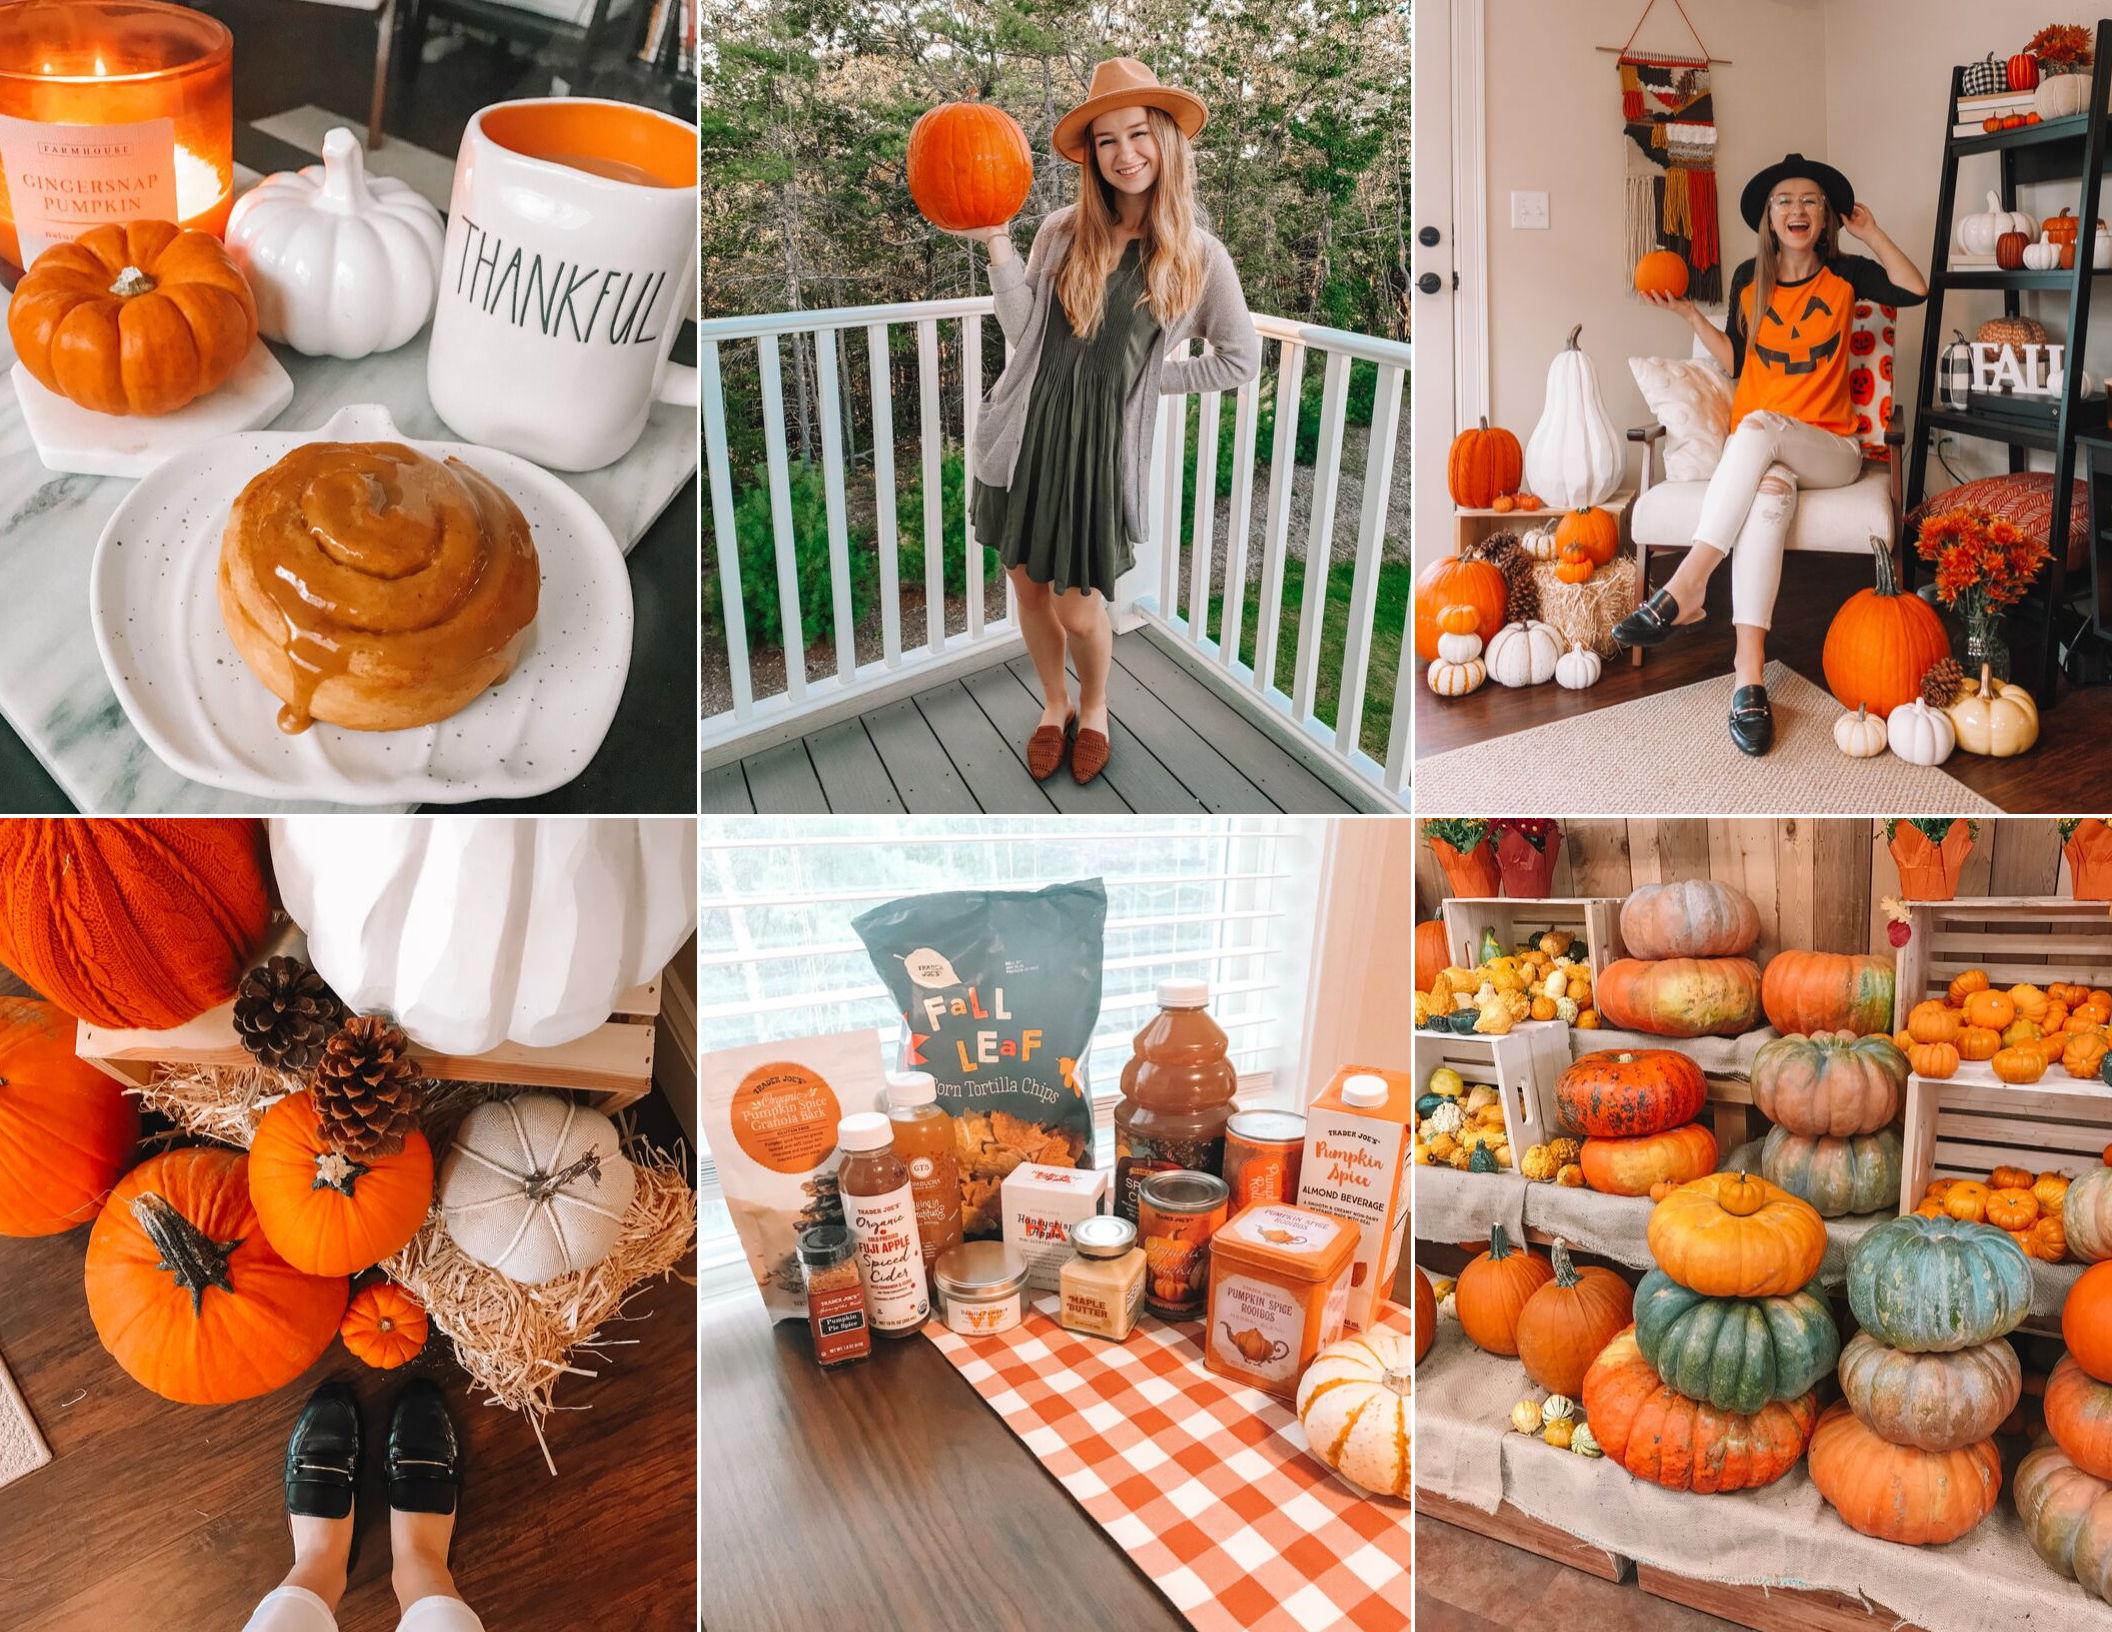 A Fall Guide to Fashion, Decor, Food & More | Hey Its Camille Grey #fall #fallguide #falltime #falldecor #fallfashion #pinterest